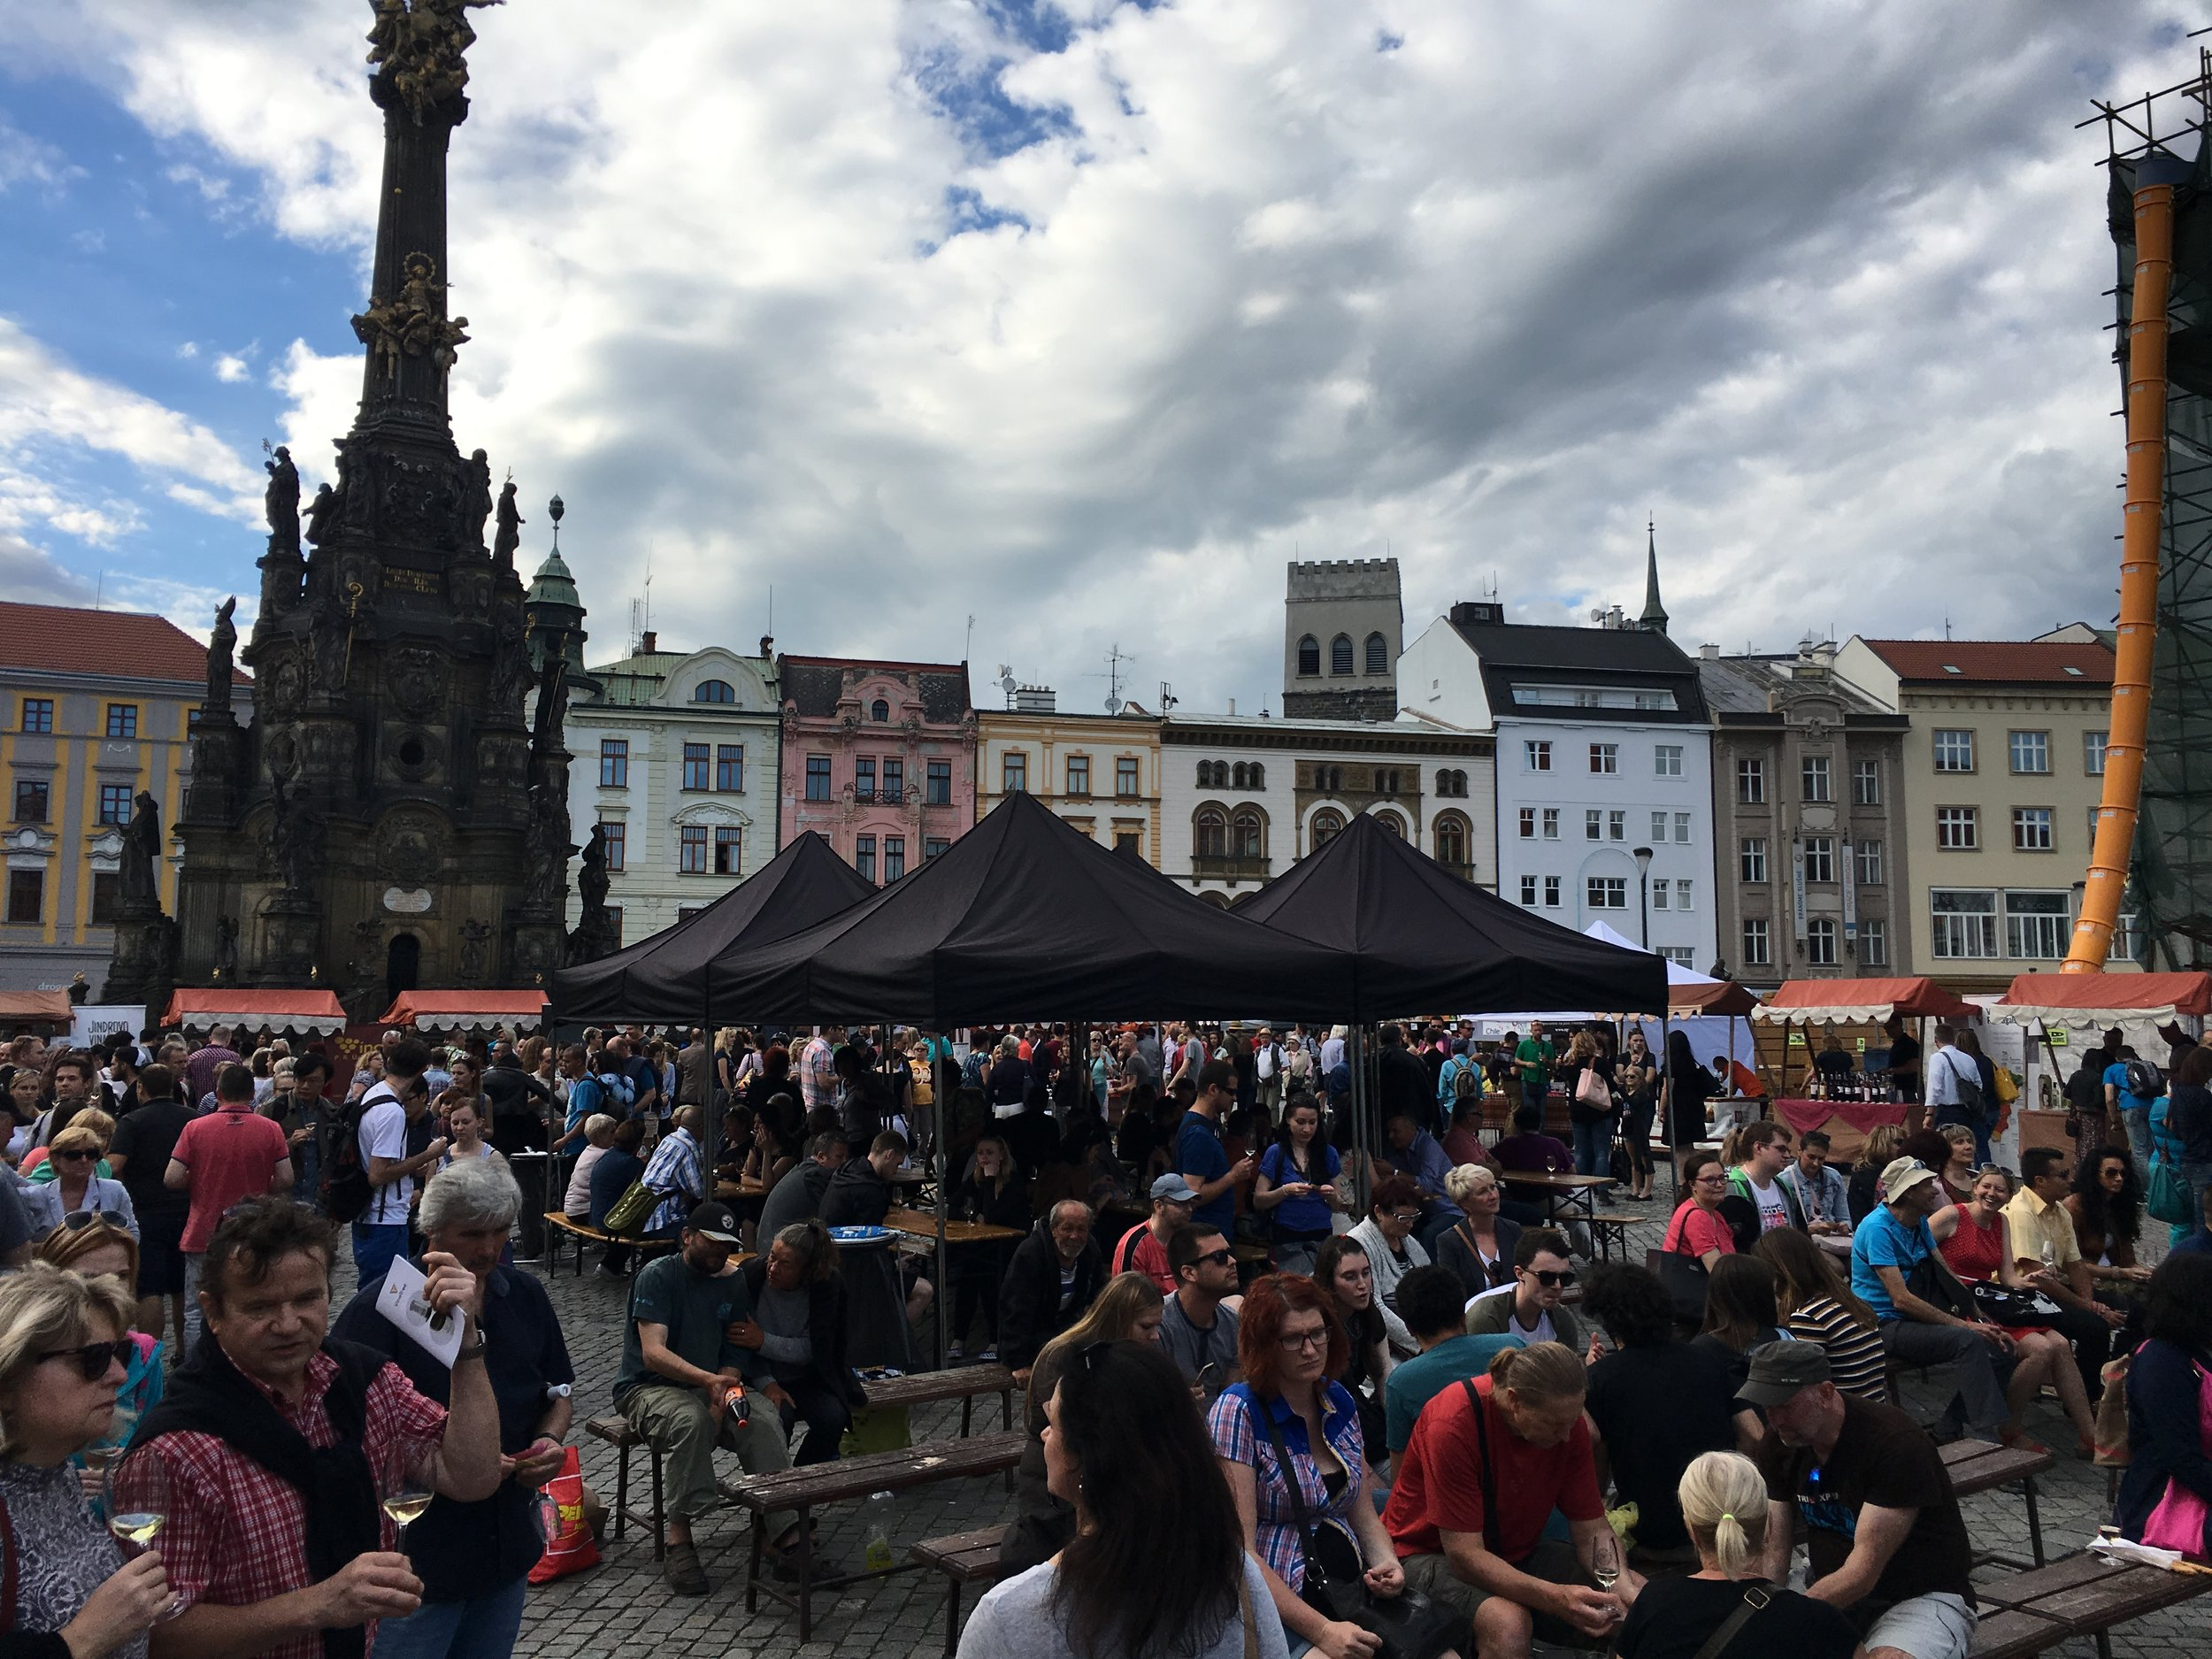 Olomouc Wine (Vino) festival.  Moravia, the region of CZ that we live in, has wine worth bragging about.